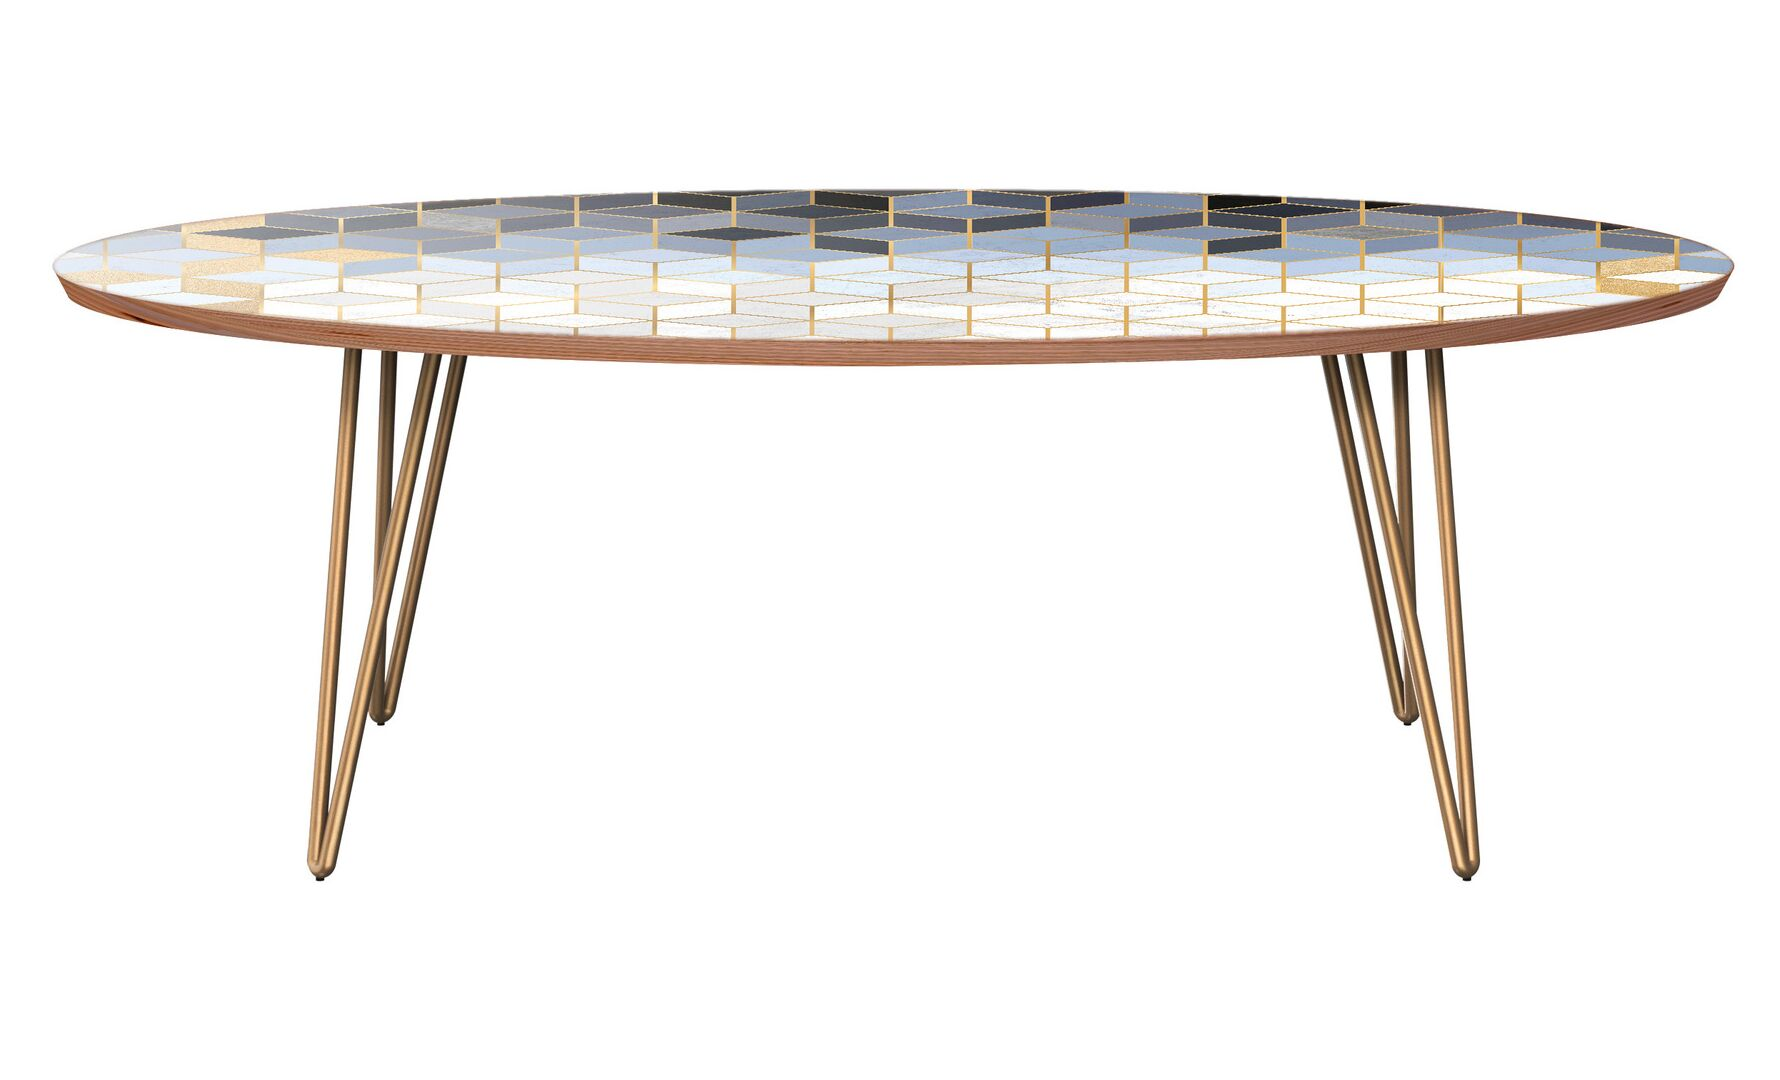 Twigg Coffee Table Table Base Color: Brass, Table Top Color: Walnut